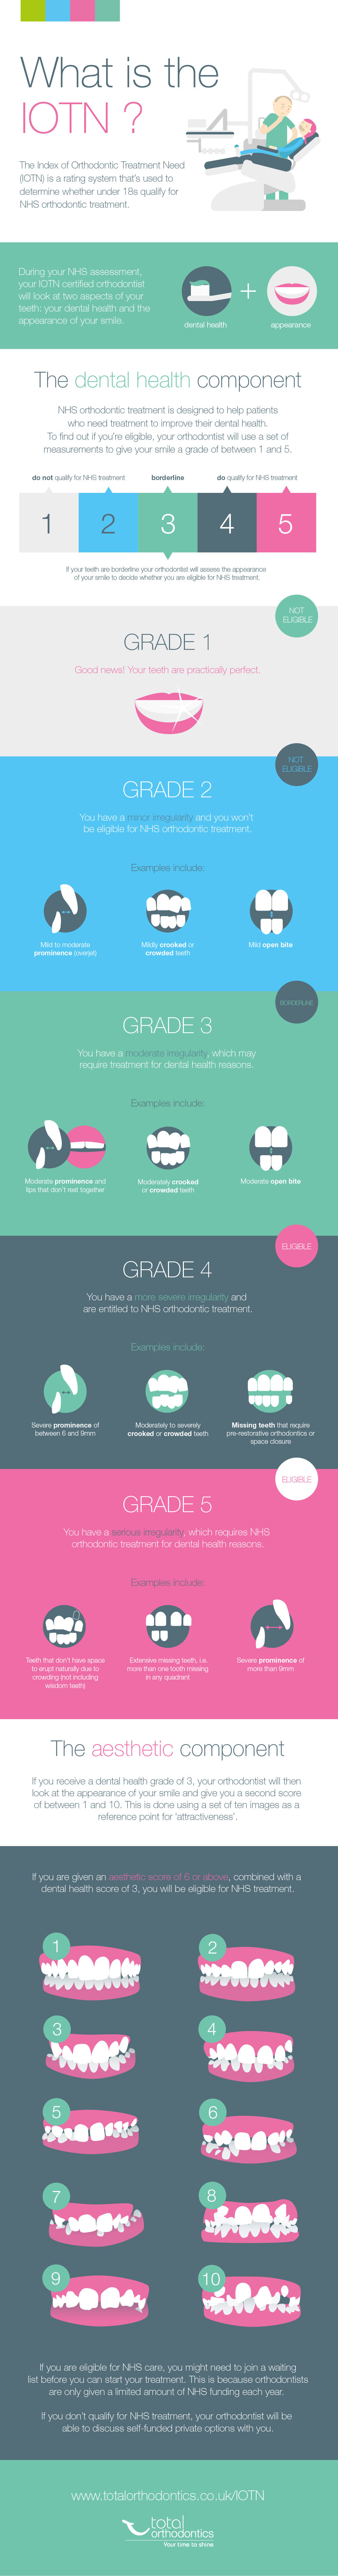 index of orthodontic treatment need